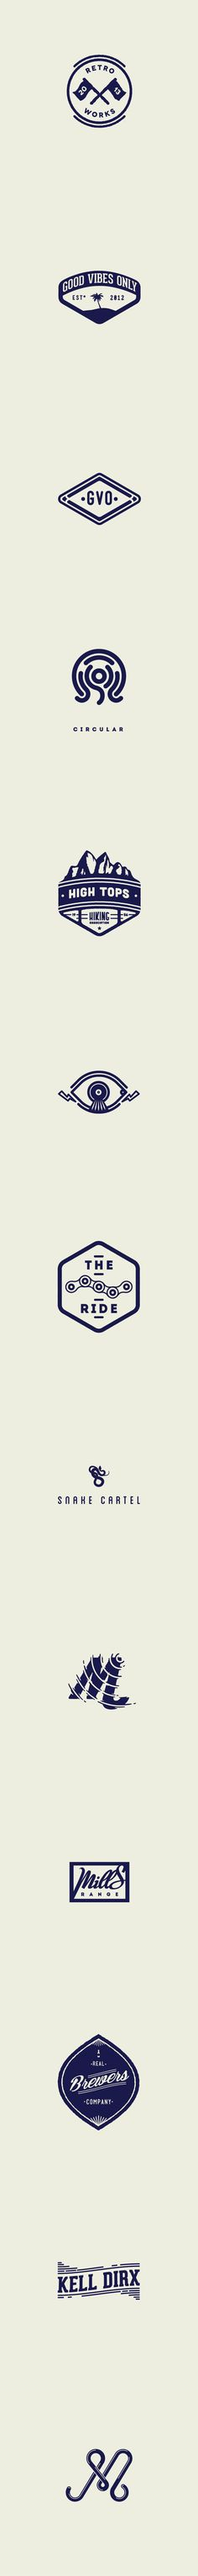 MARKS BADGES by Gijs Dries, via Behance